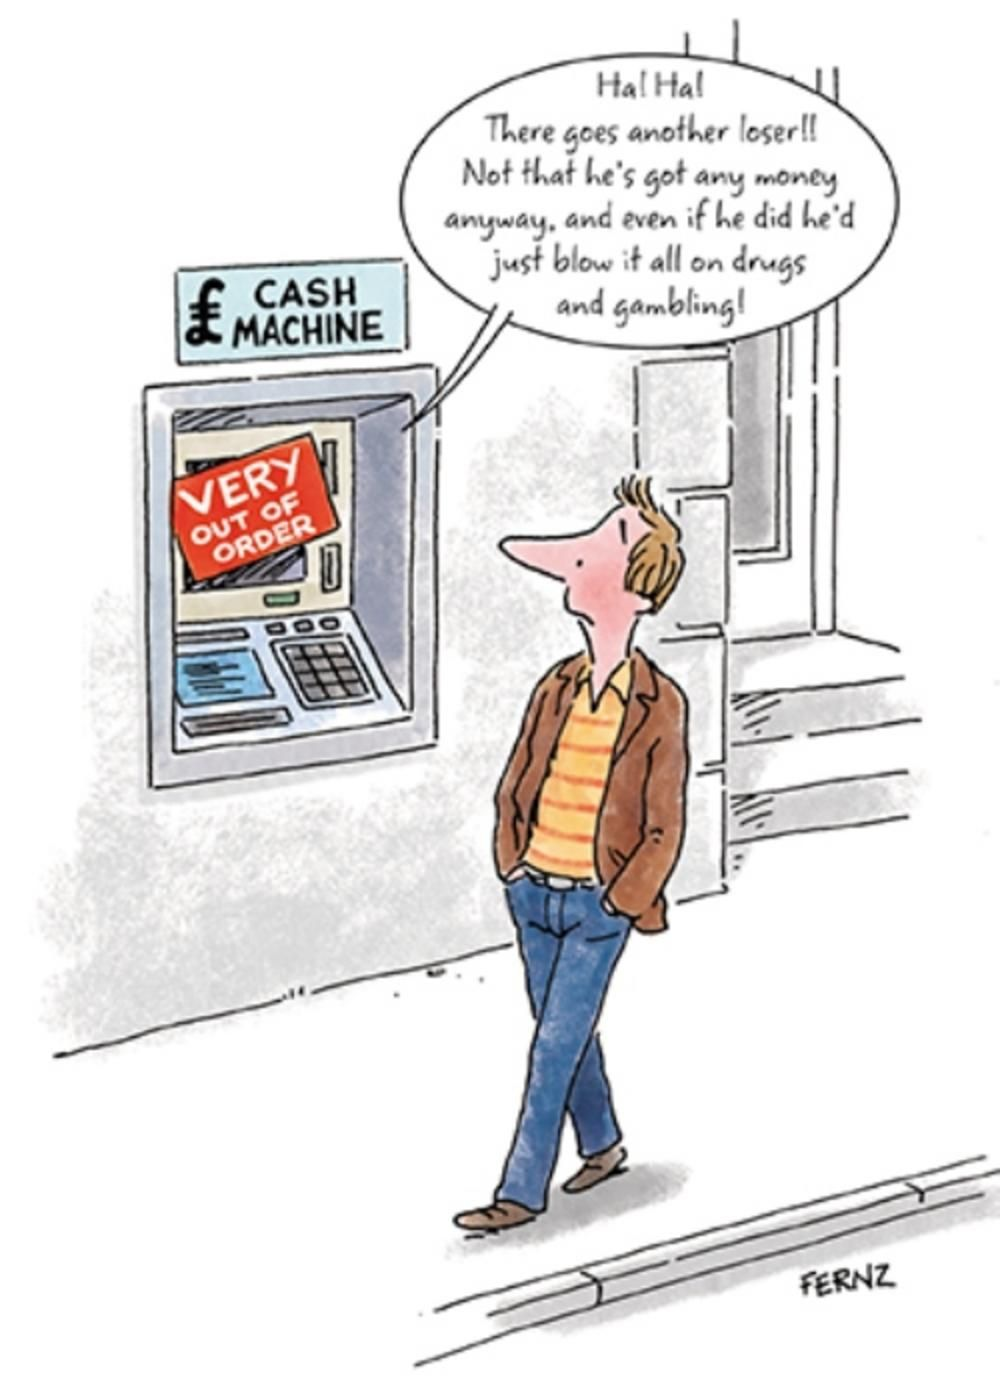 Cash Machine Out Of Order Funny Birthday Greeting Card